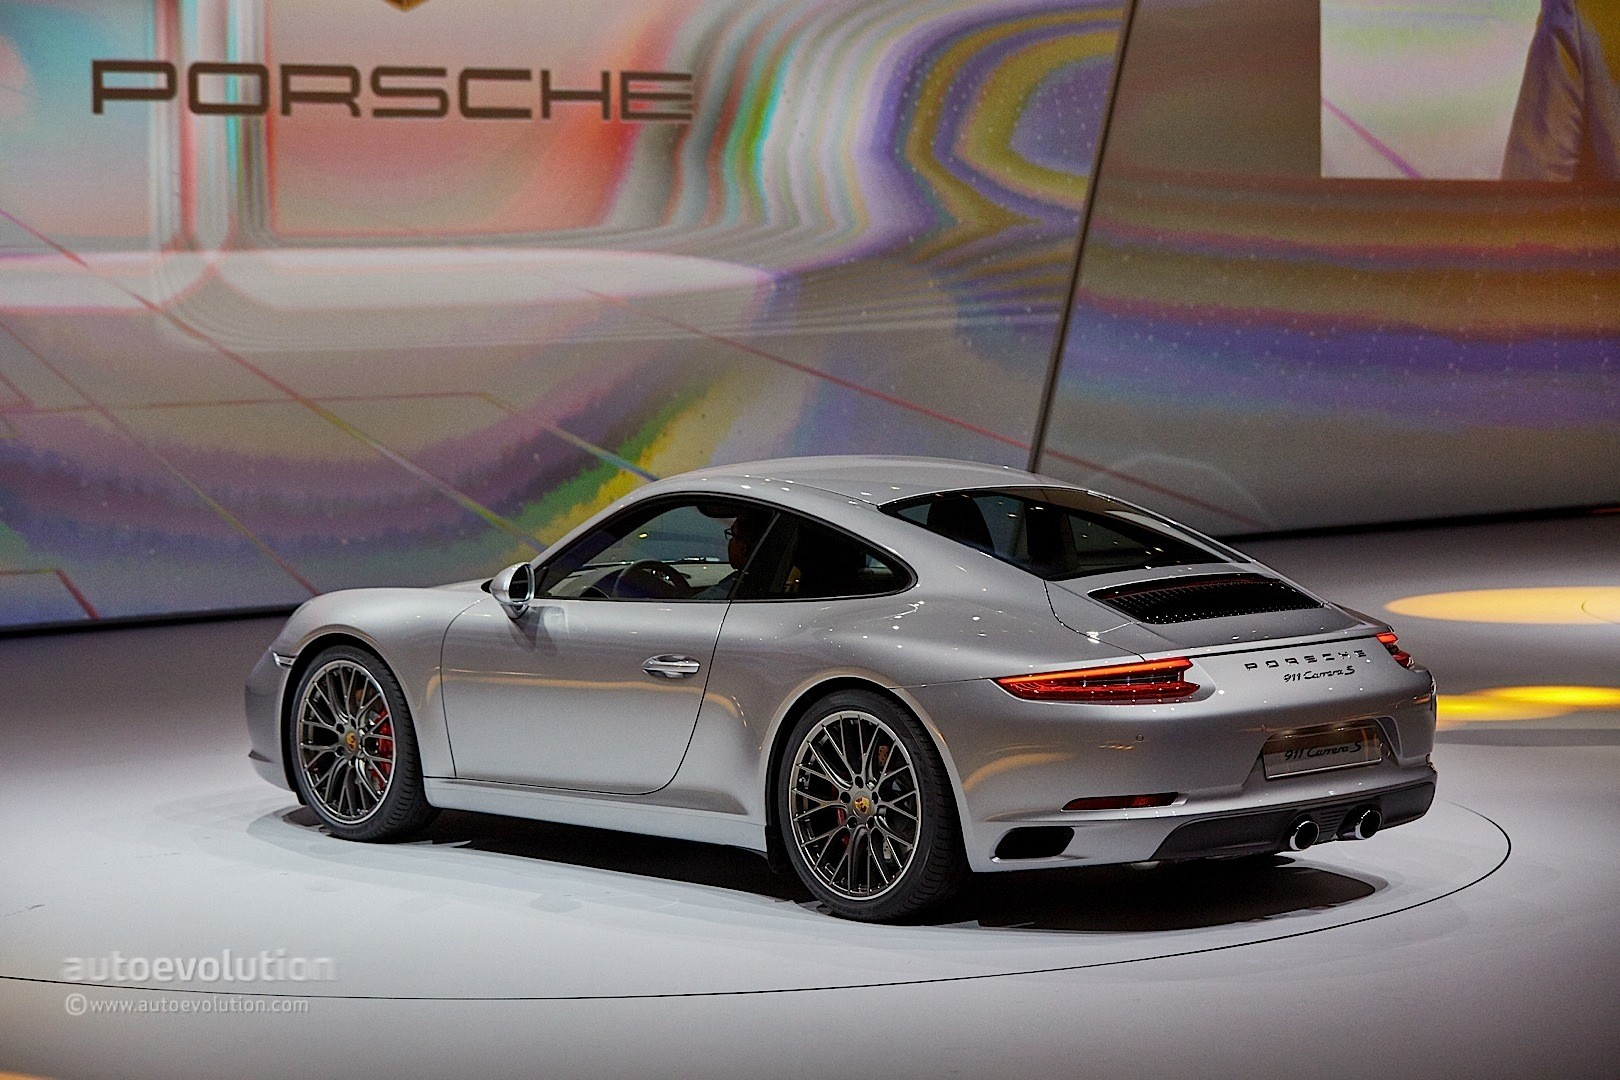 2017 Porsche 911 Feels Like An Old School Turbo Machine In